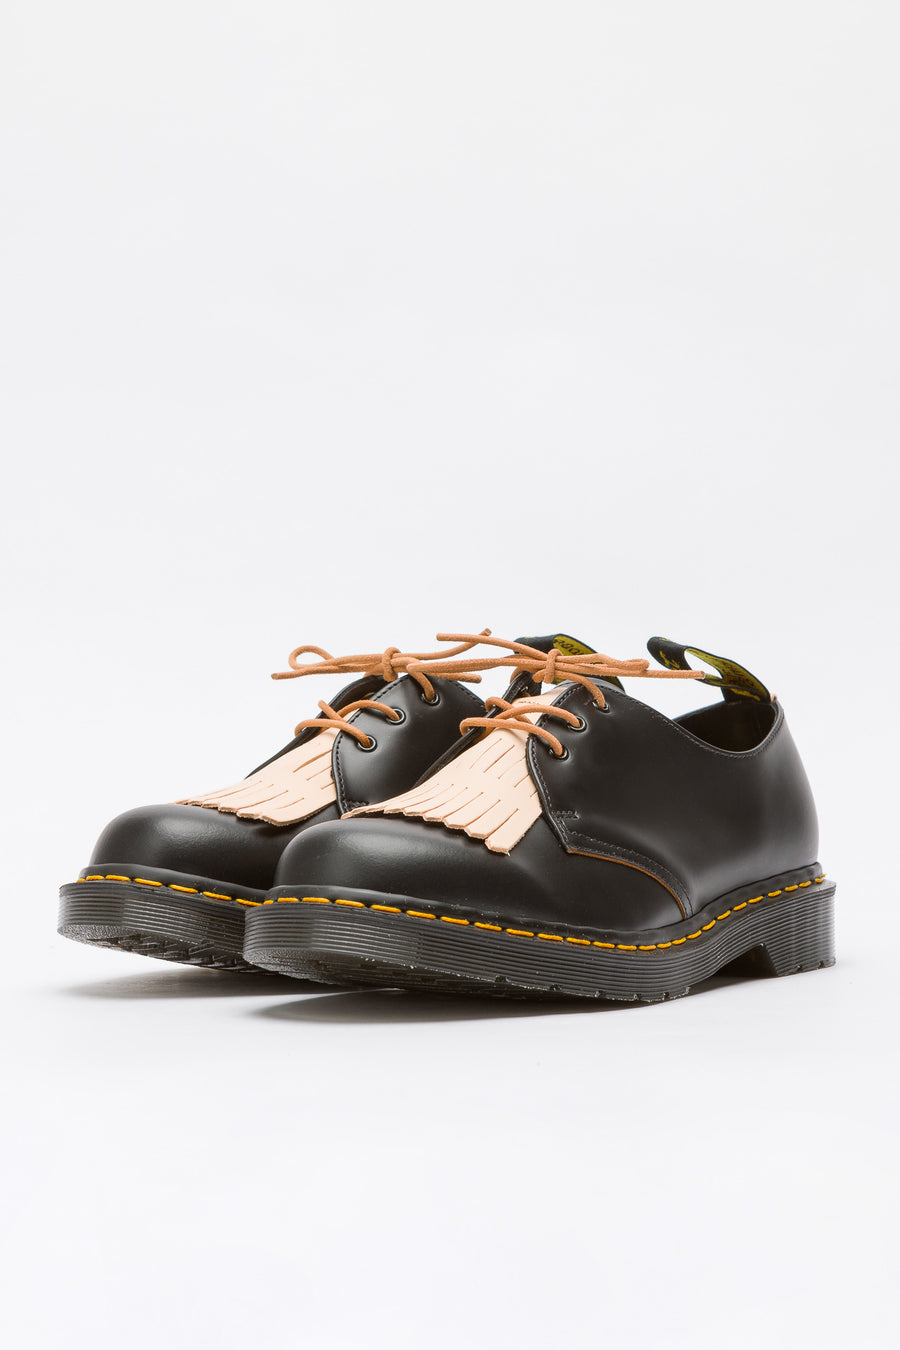 Dr. Martens Hender Scheme 1461 Shoe in Black/Natural - Notre